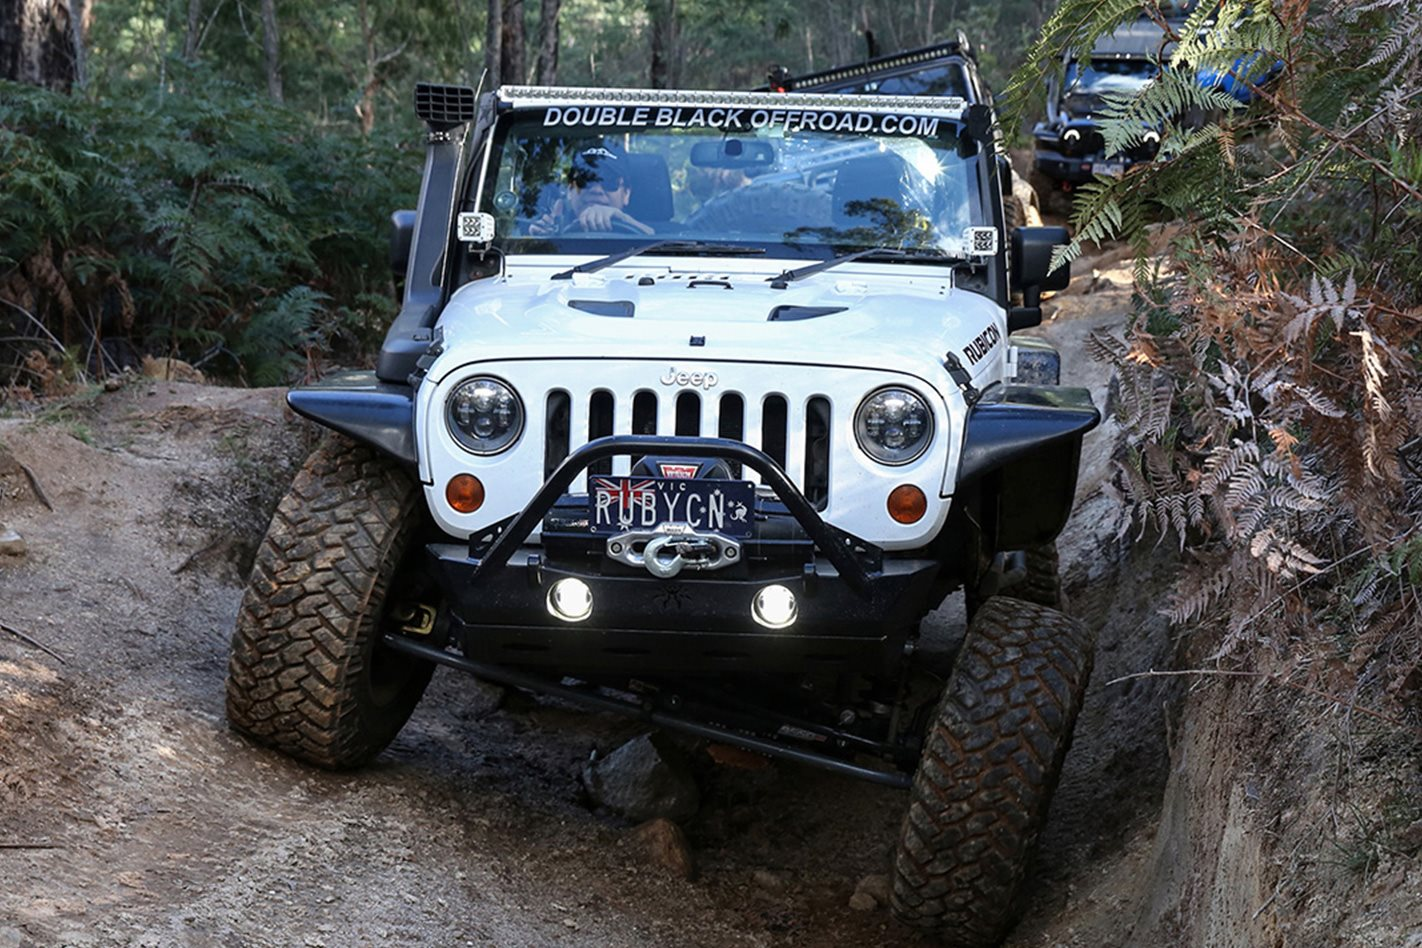 2011 Toyota FJ vs 2013 Jeep Wrangler Rubicon vs 2013 Land